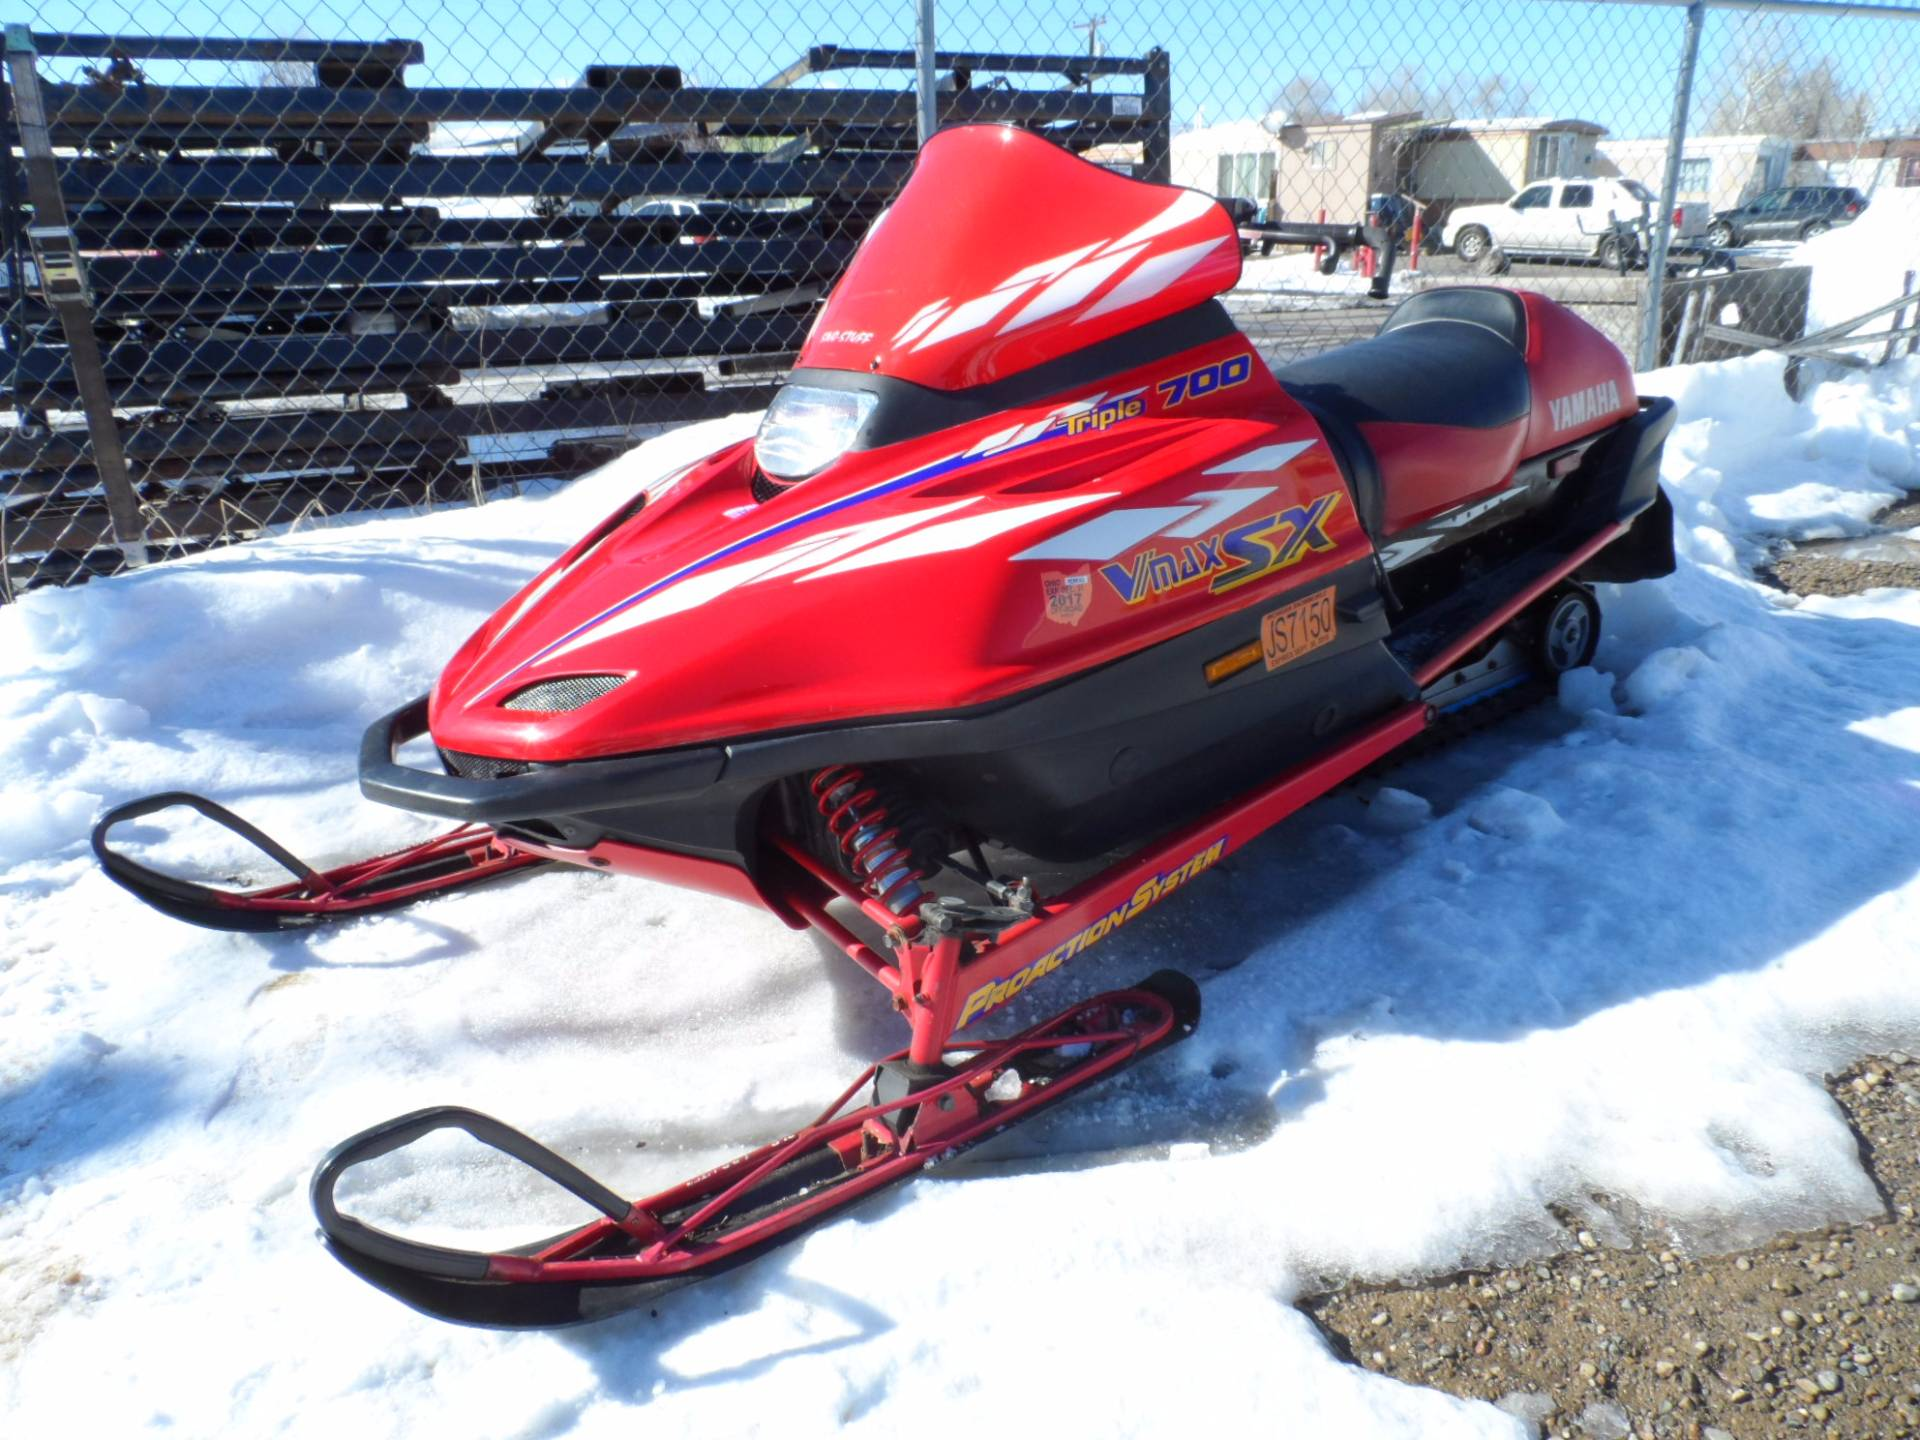 1997 Yamaha SX 700 in Gunnison, Colorado